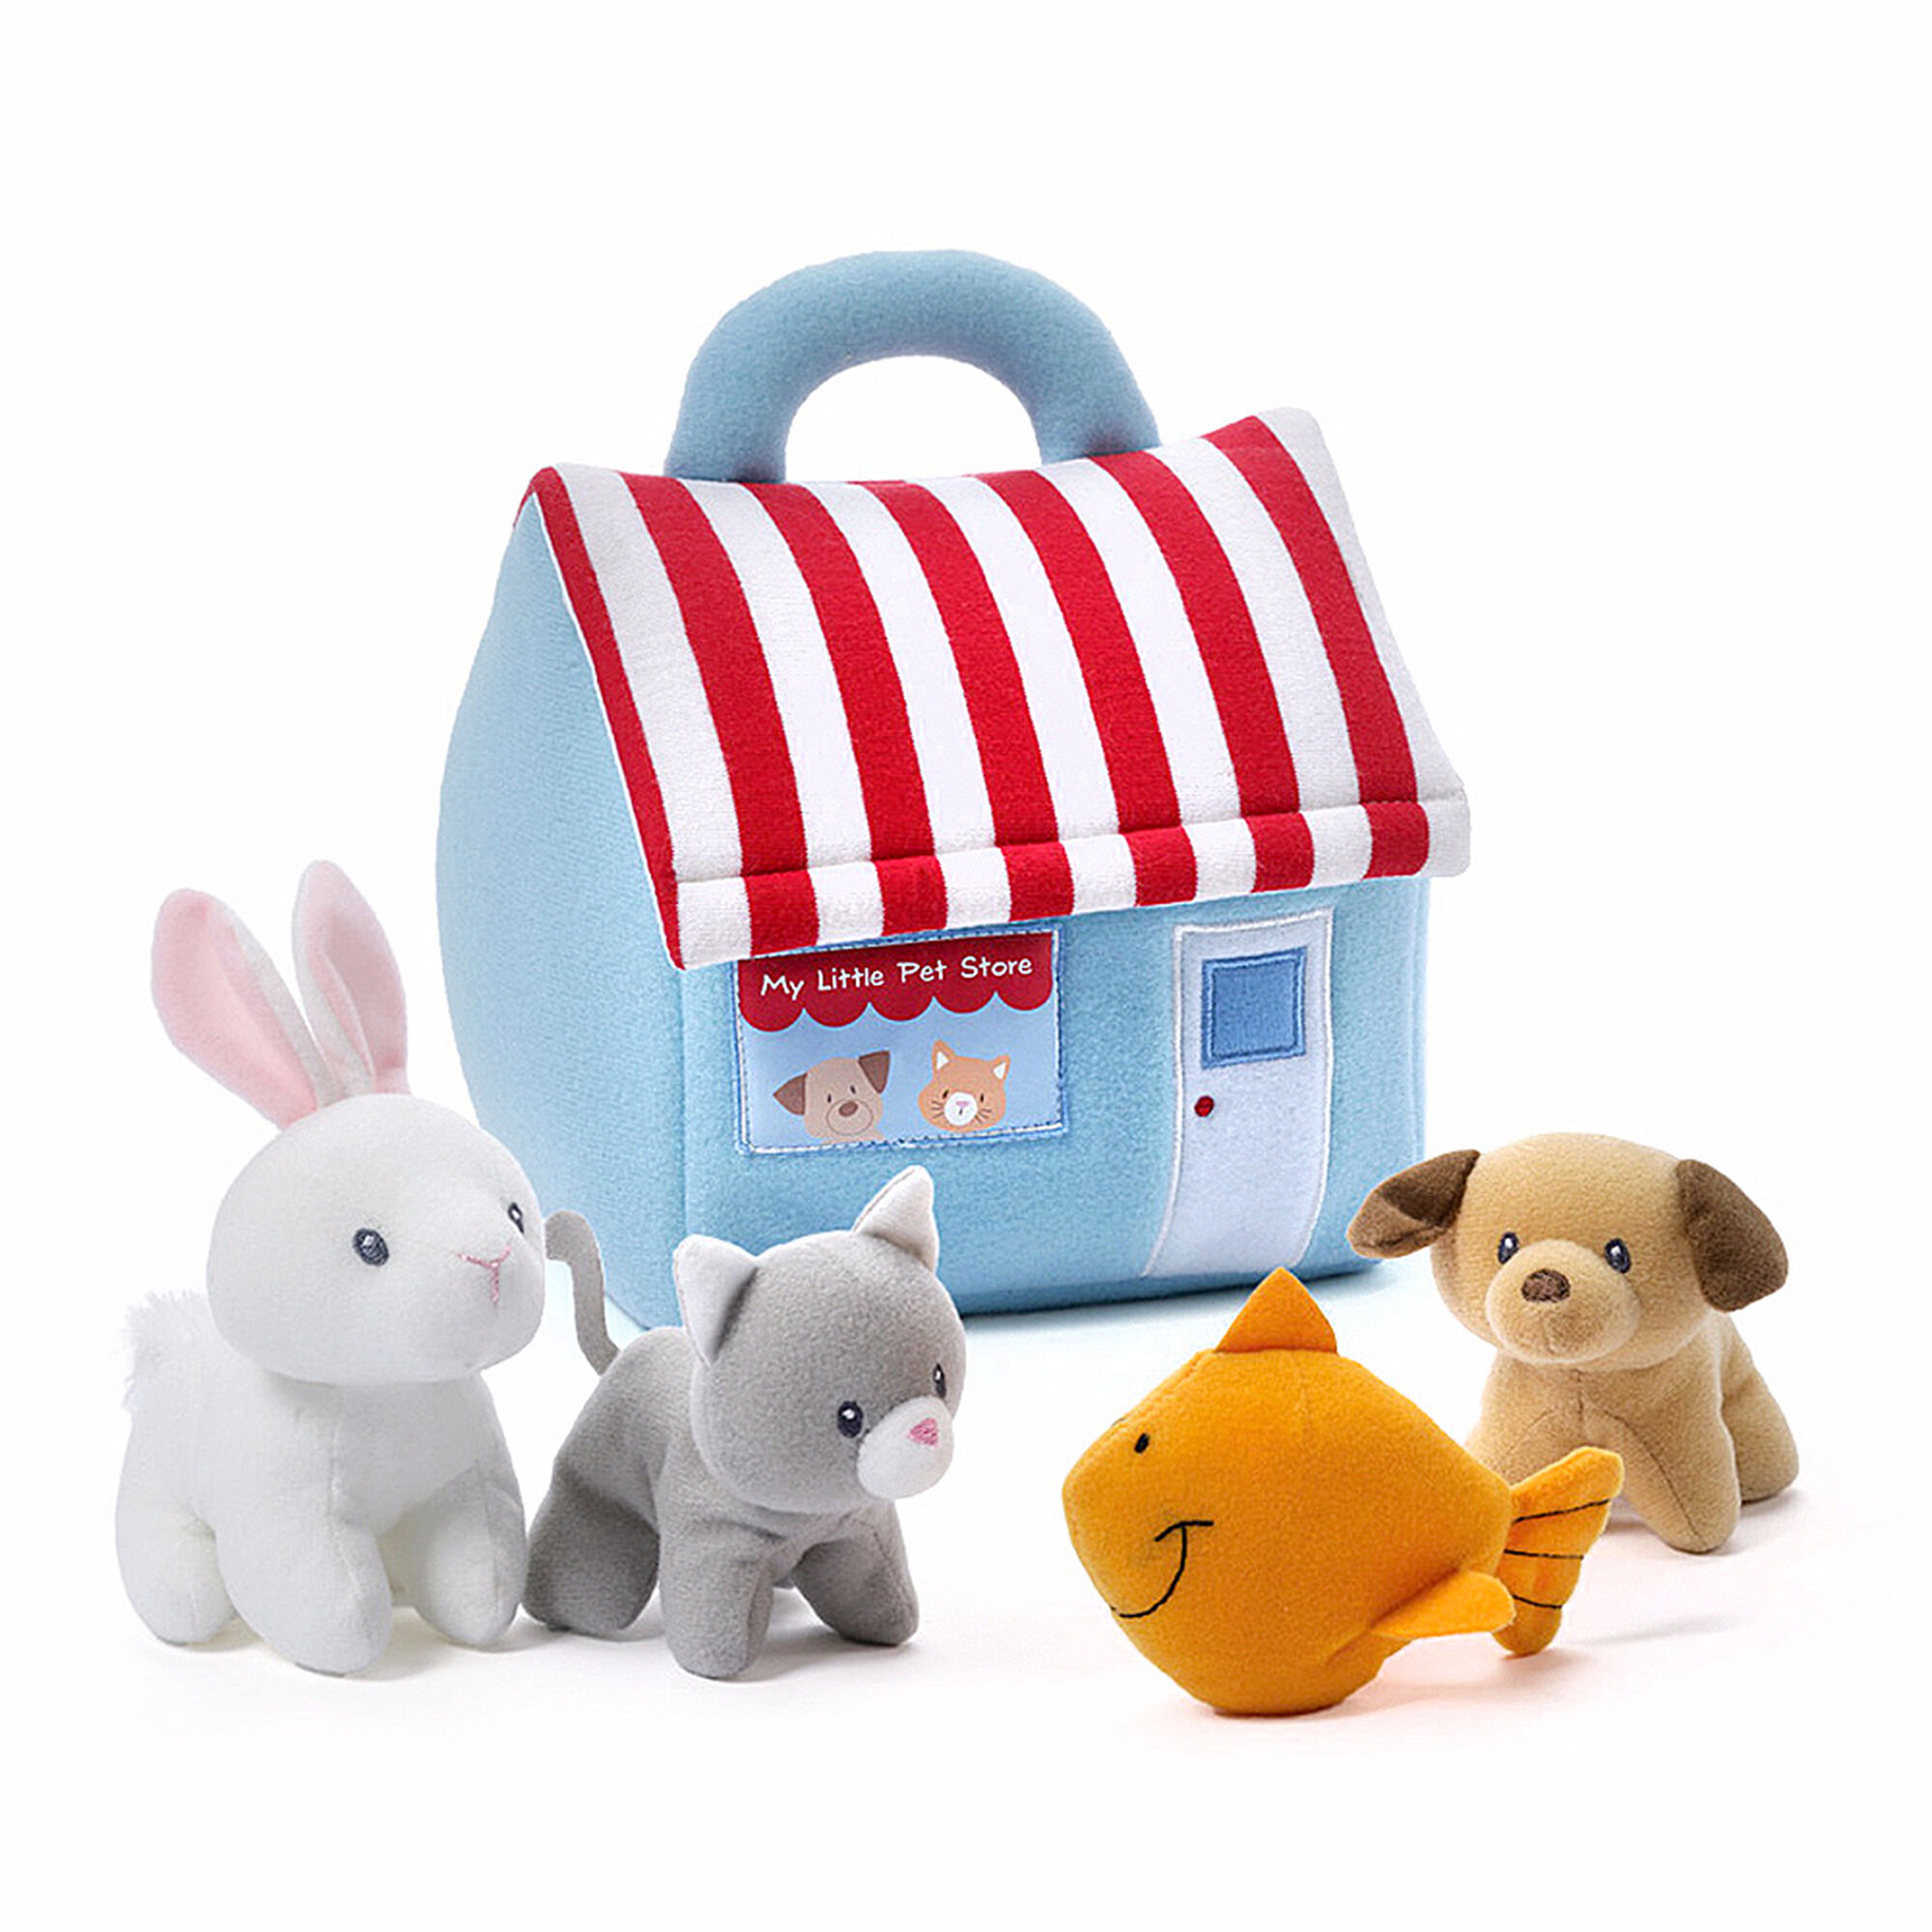 Kids Baby Gund My Little Pet Shop Soft Playset